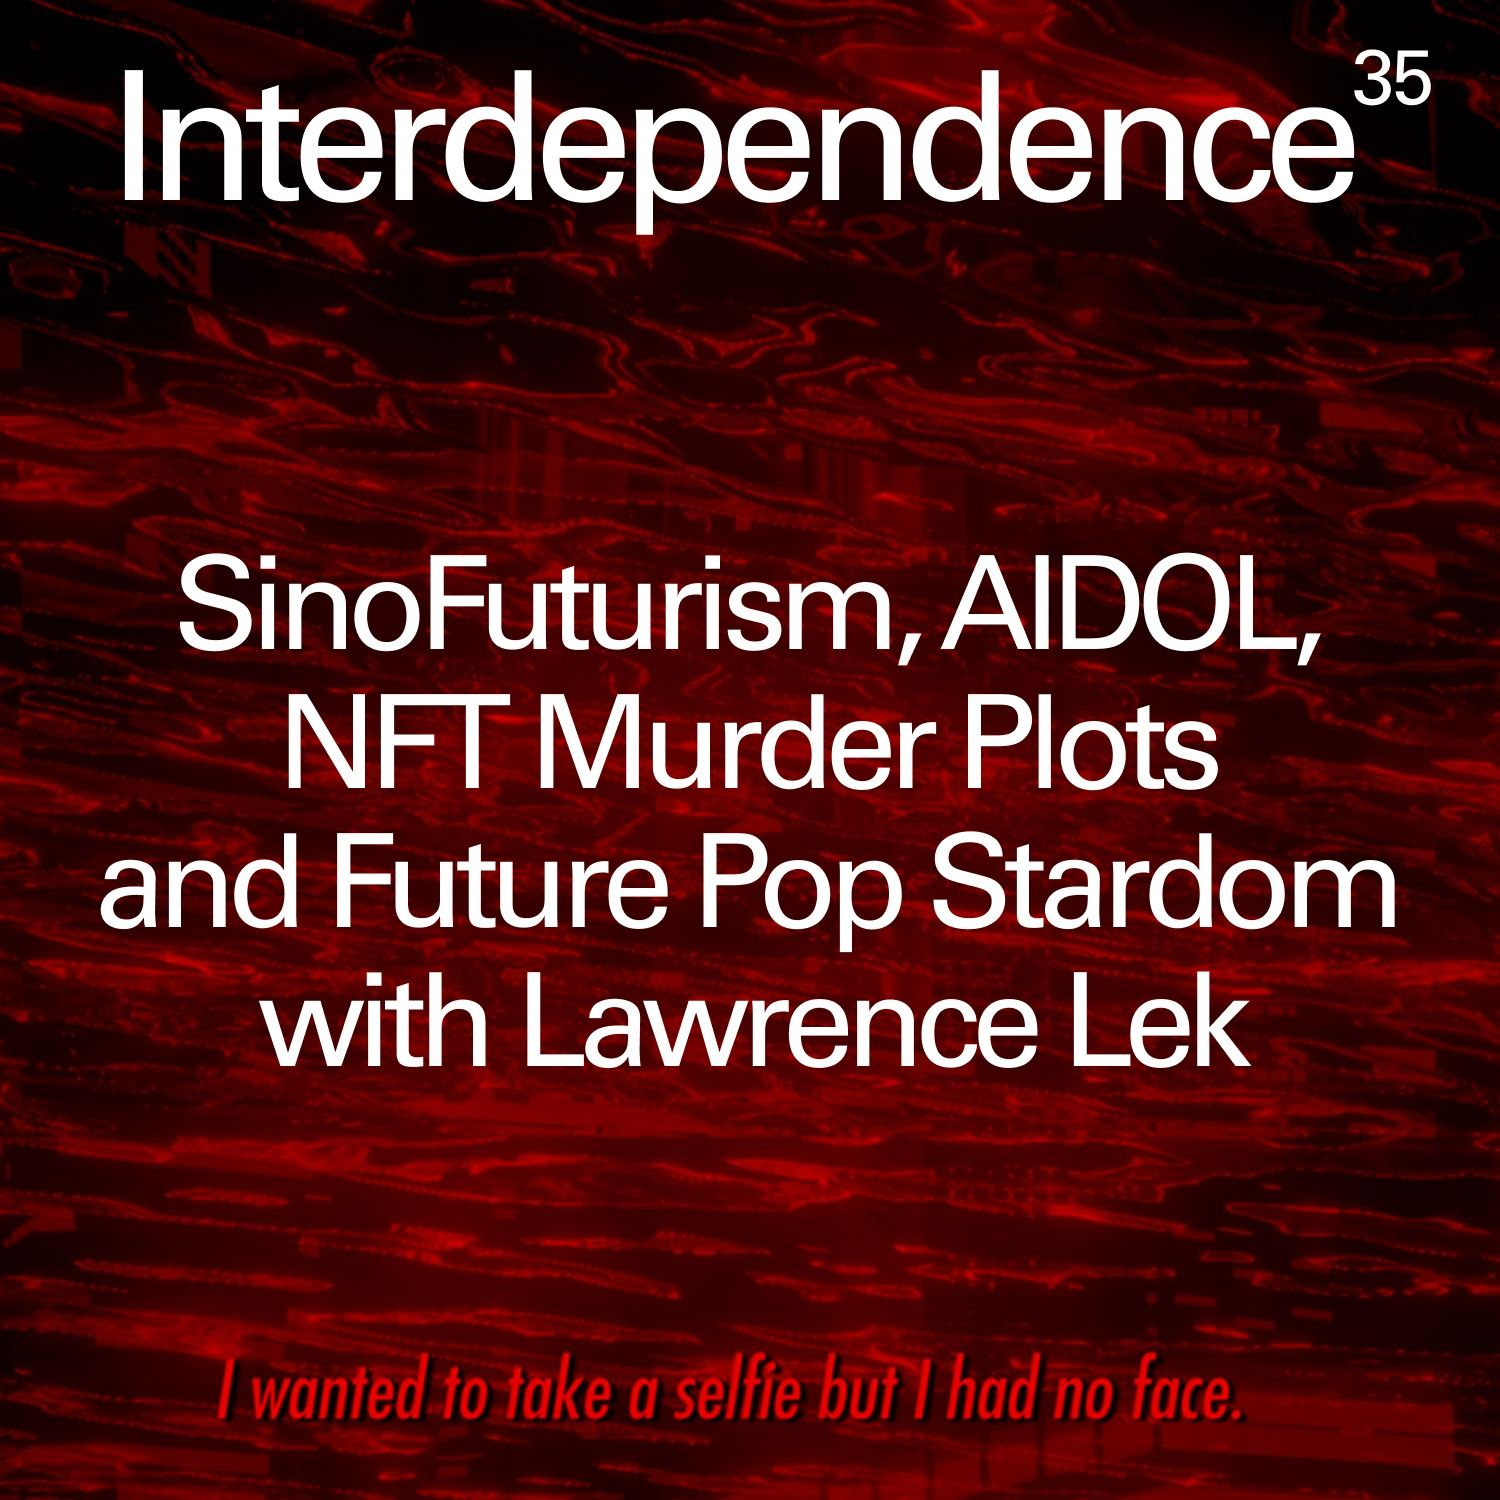 SinoFuturism, AIDOL, NFT Murder Plots and Future Pop Stardom with Lawrence Lek